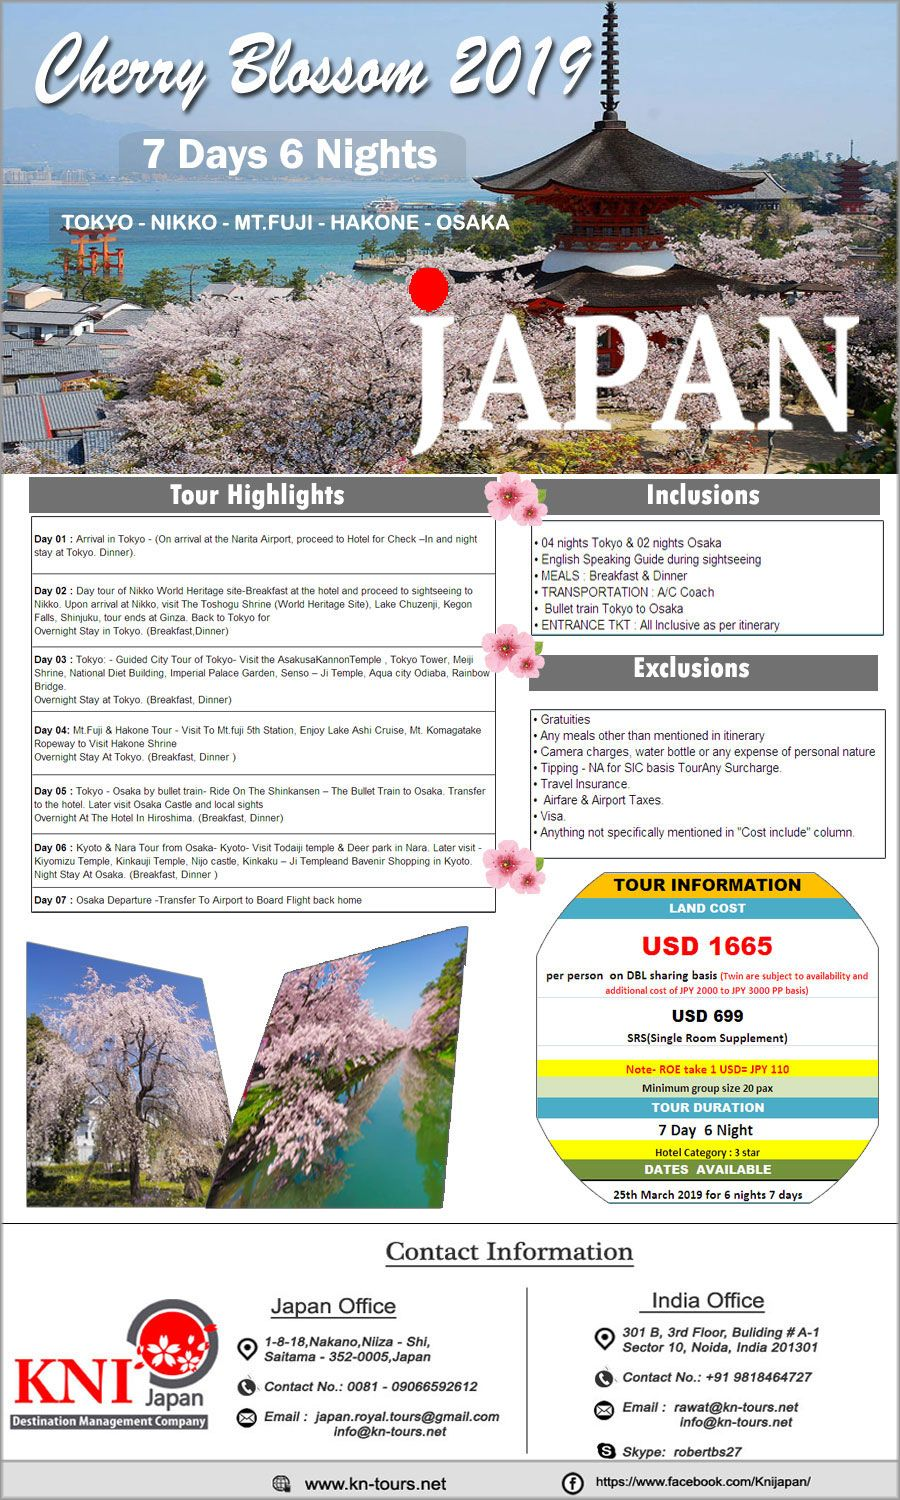 Cherry Blossom Tour Packages 2019